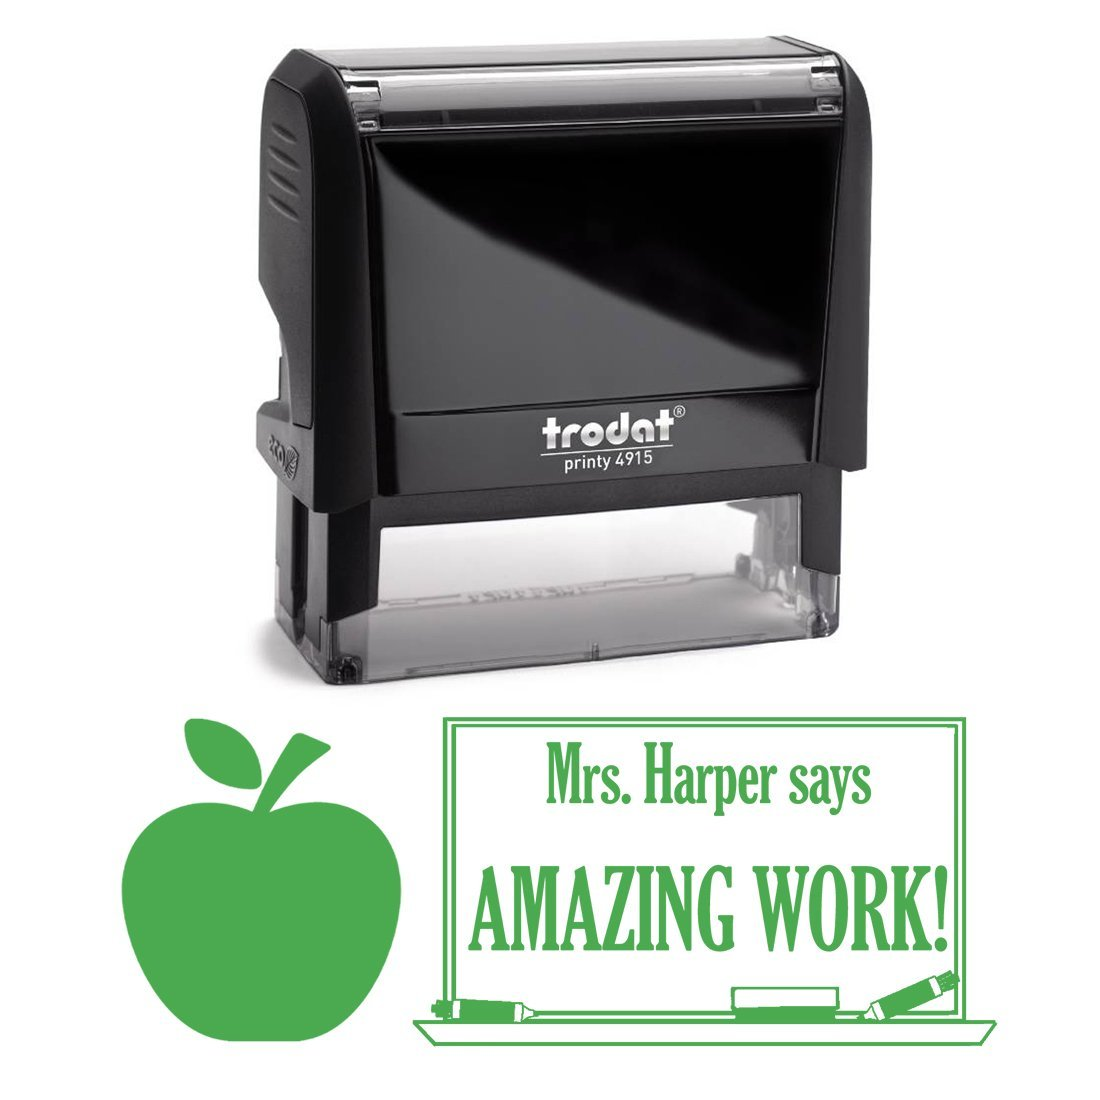 Green Ink, Apple Awesome Job Teacher Stamp, Self Inking, Homework Personalized School Work Stamp, Large 2 Lines, Customized Unique Gift, Personal Classroom Stamper